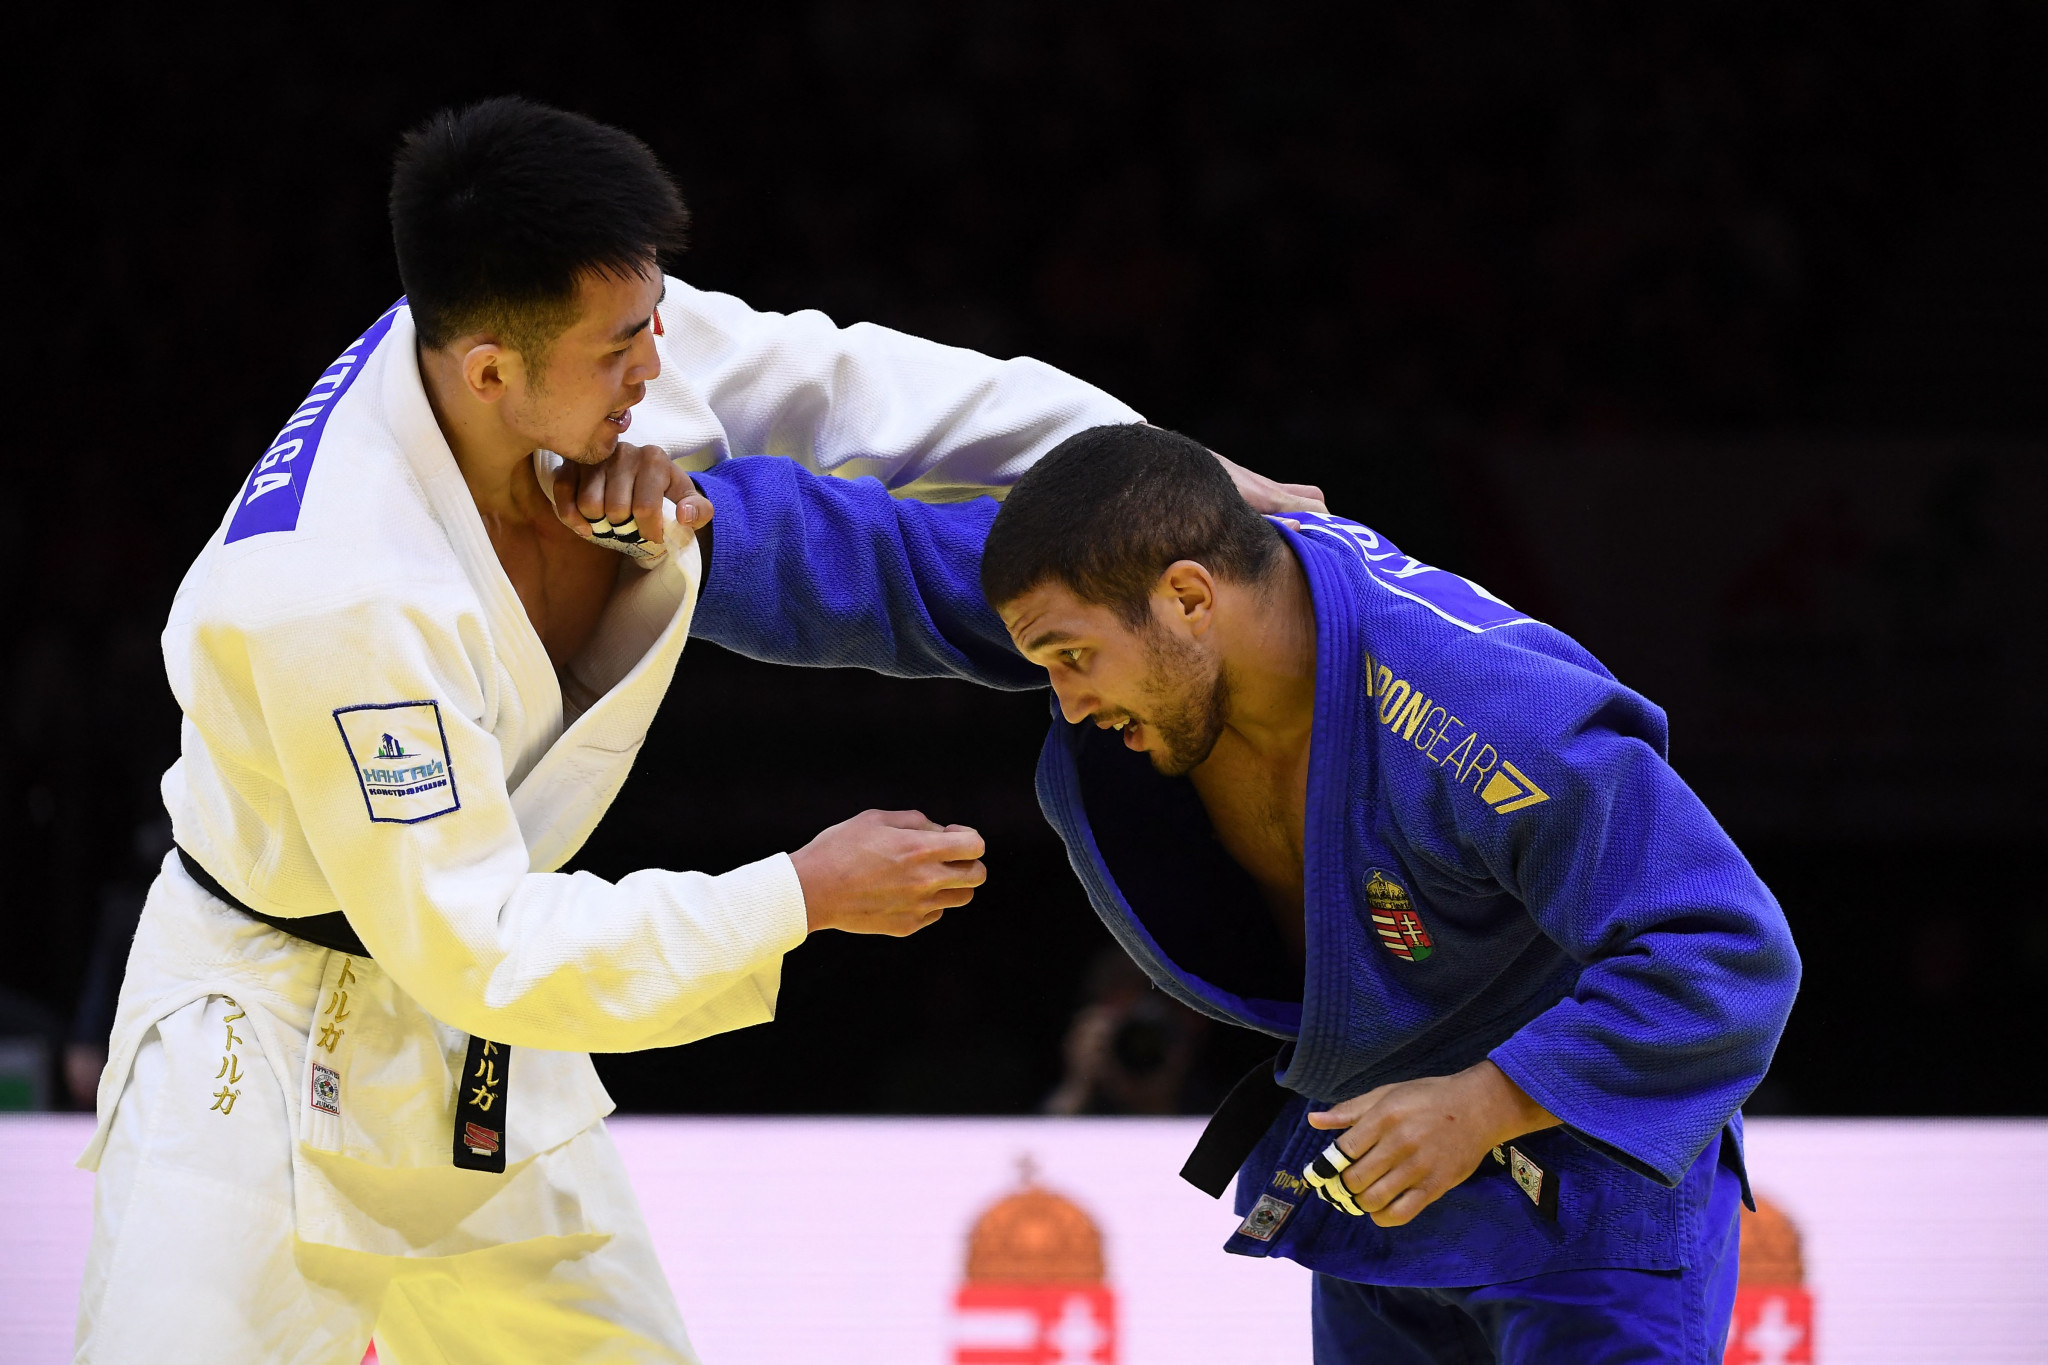 Krisztián Tóth, right, fights Mongolian giant Altanbagana Gantulga in the bronze-medal match ©Getty Images